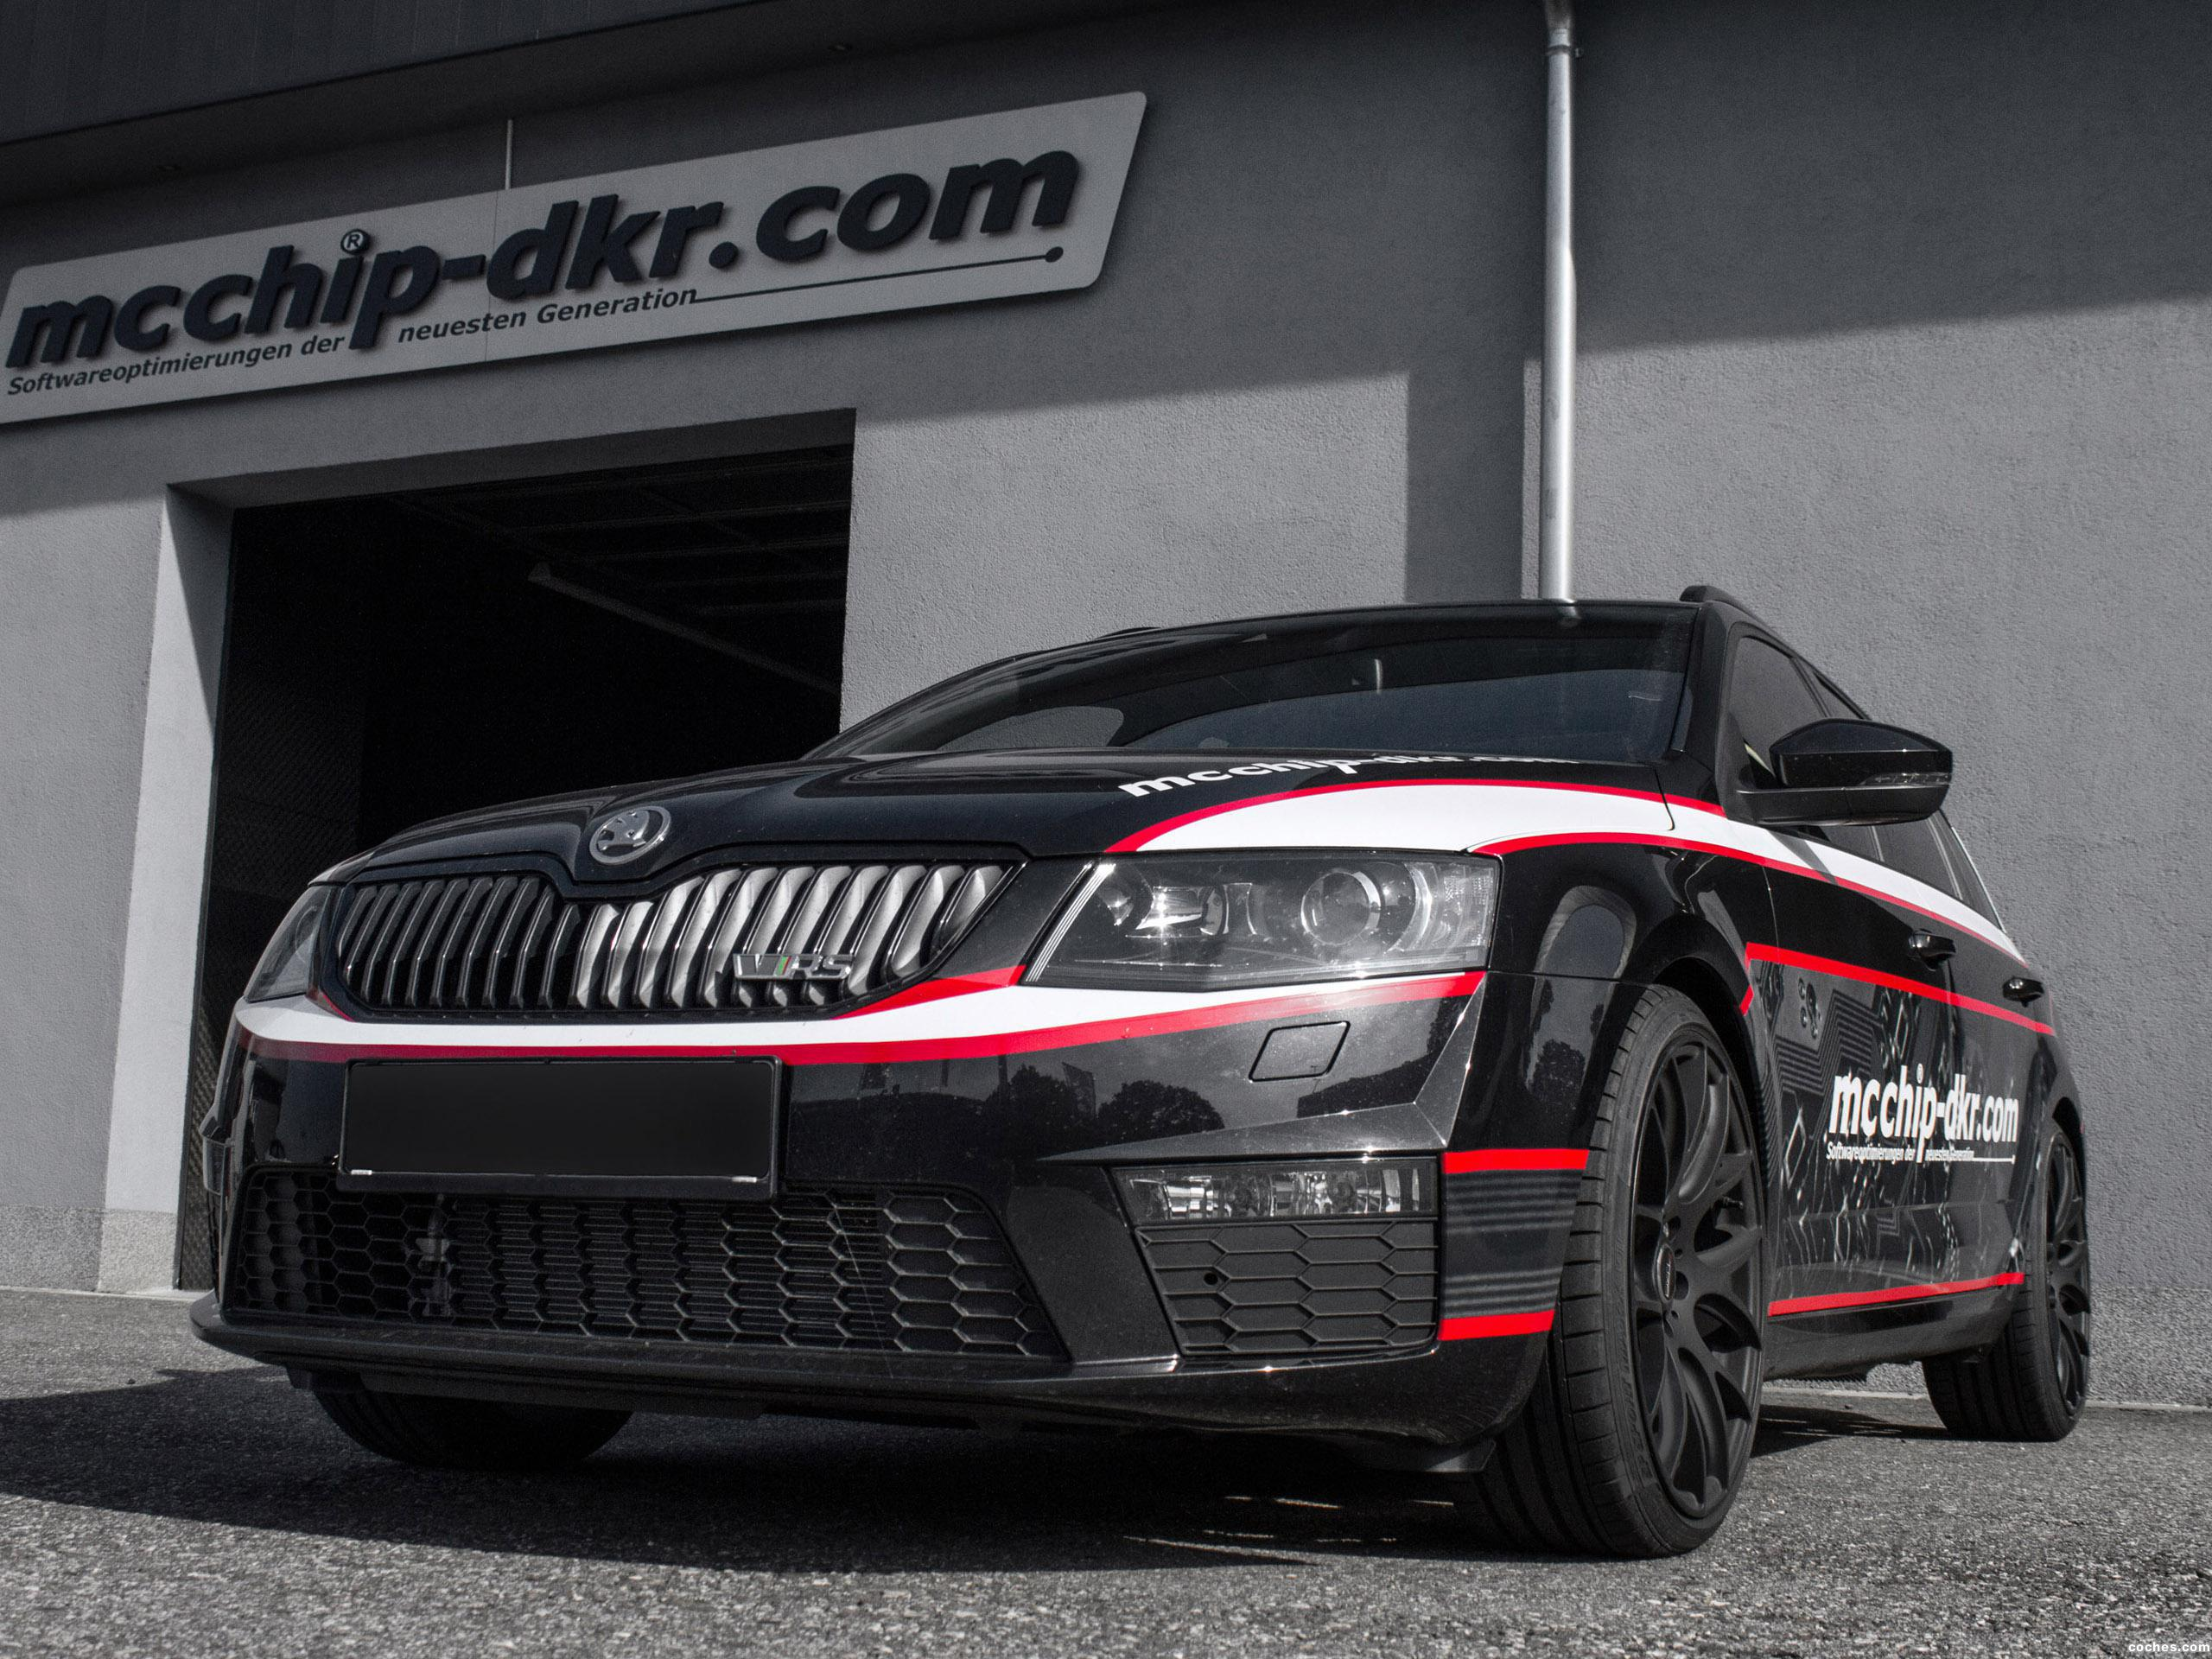 Foto 0 de Skoda MC Chip Dkr Octavia RS Wagon 2014